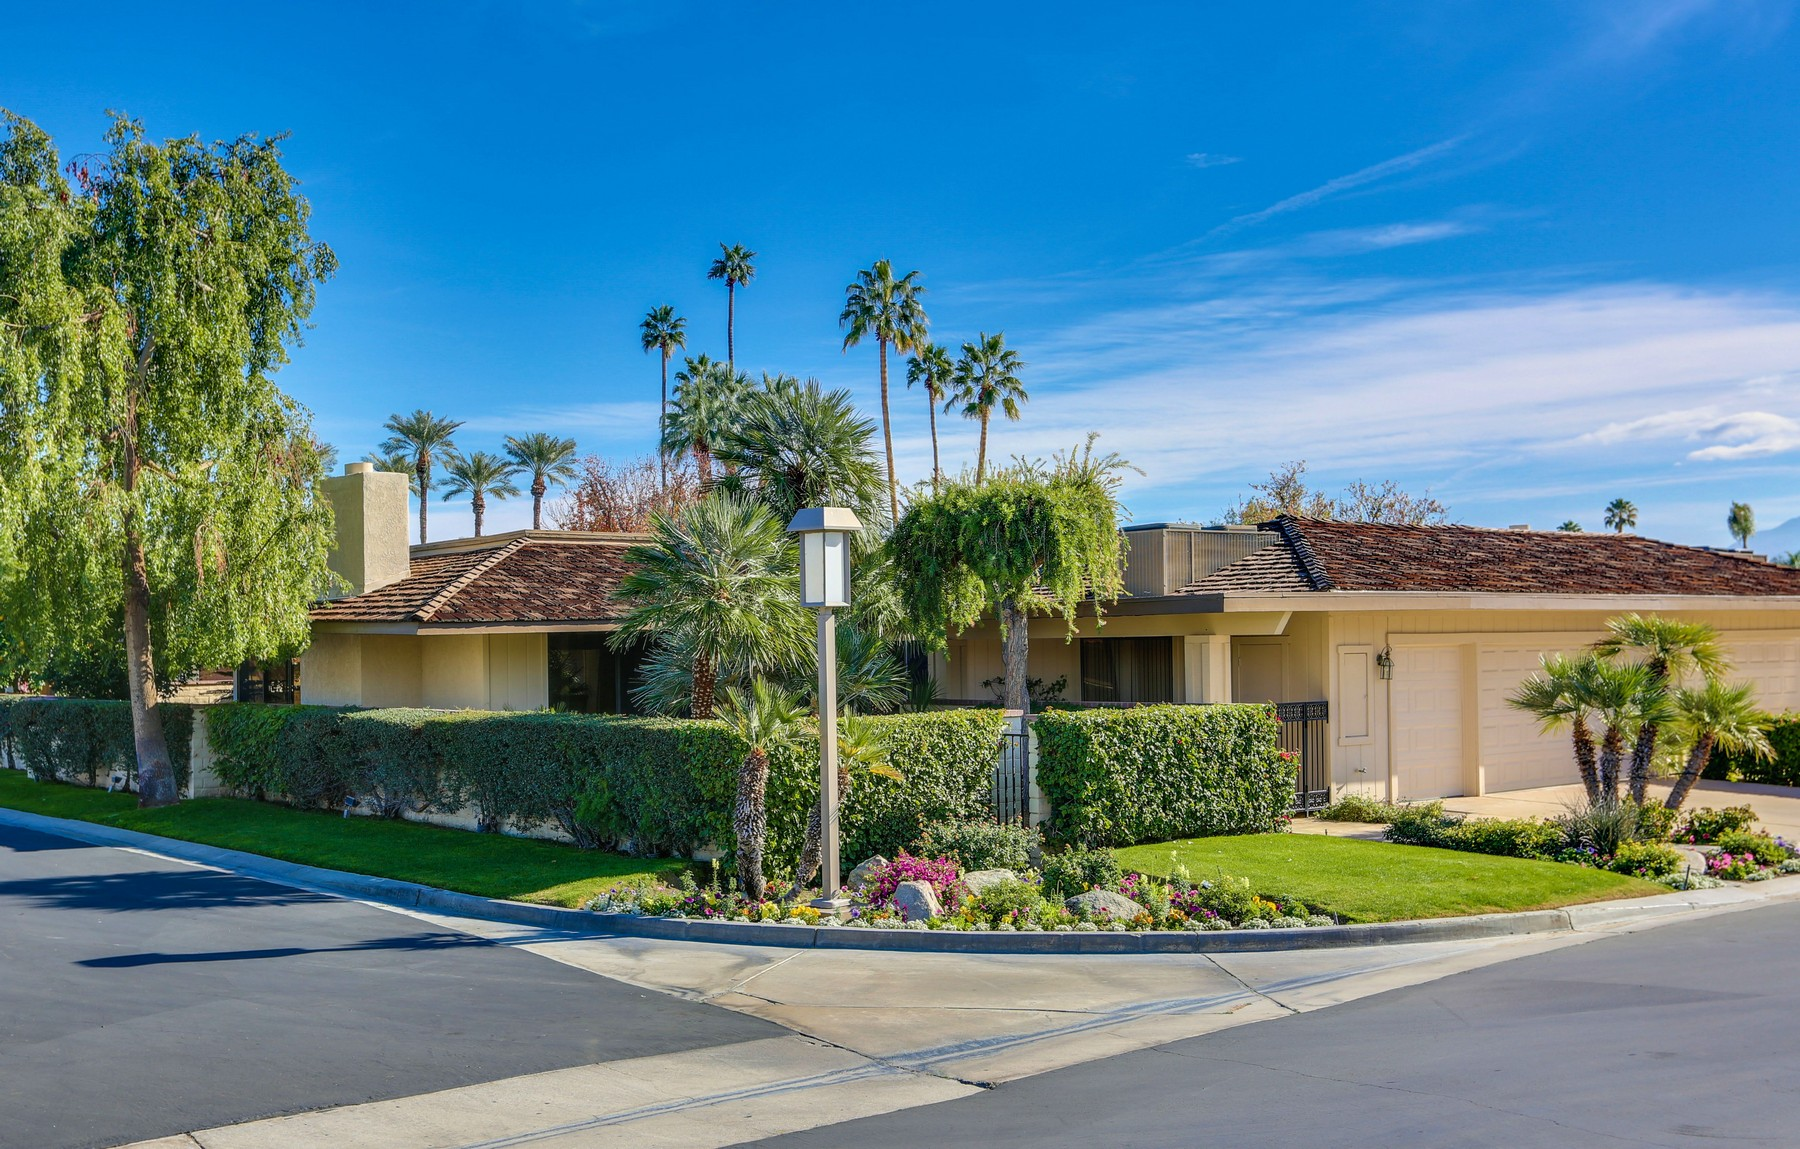 Single Family Home for Sale at 35 Princeton Drive Rancho Mirage, California, 92270 United States